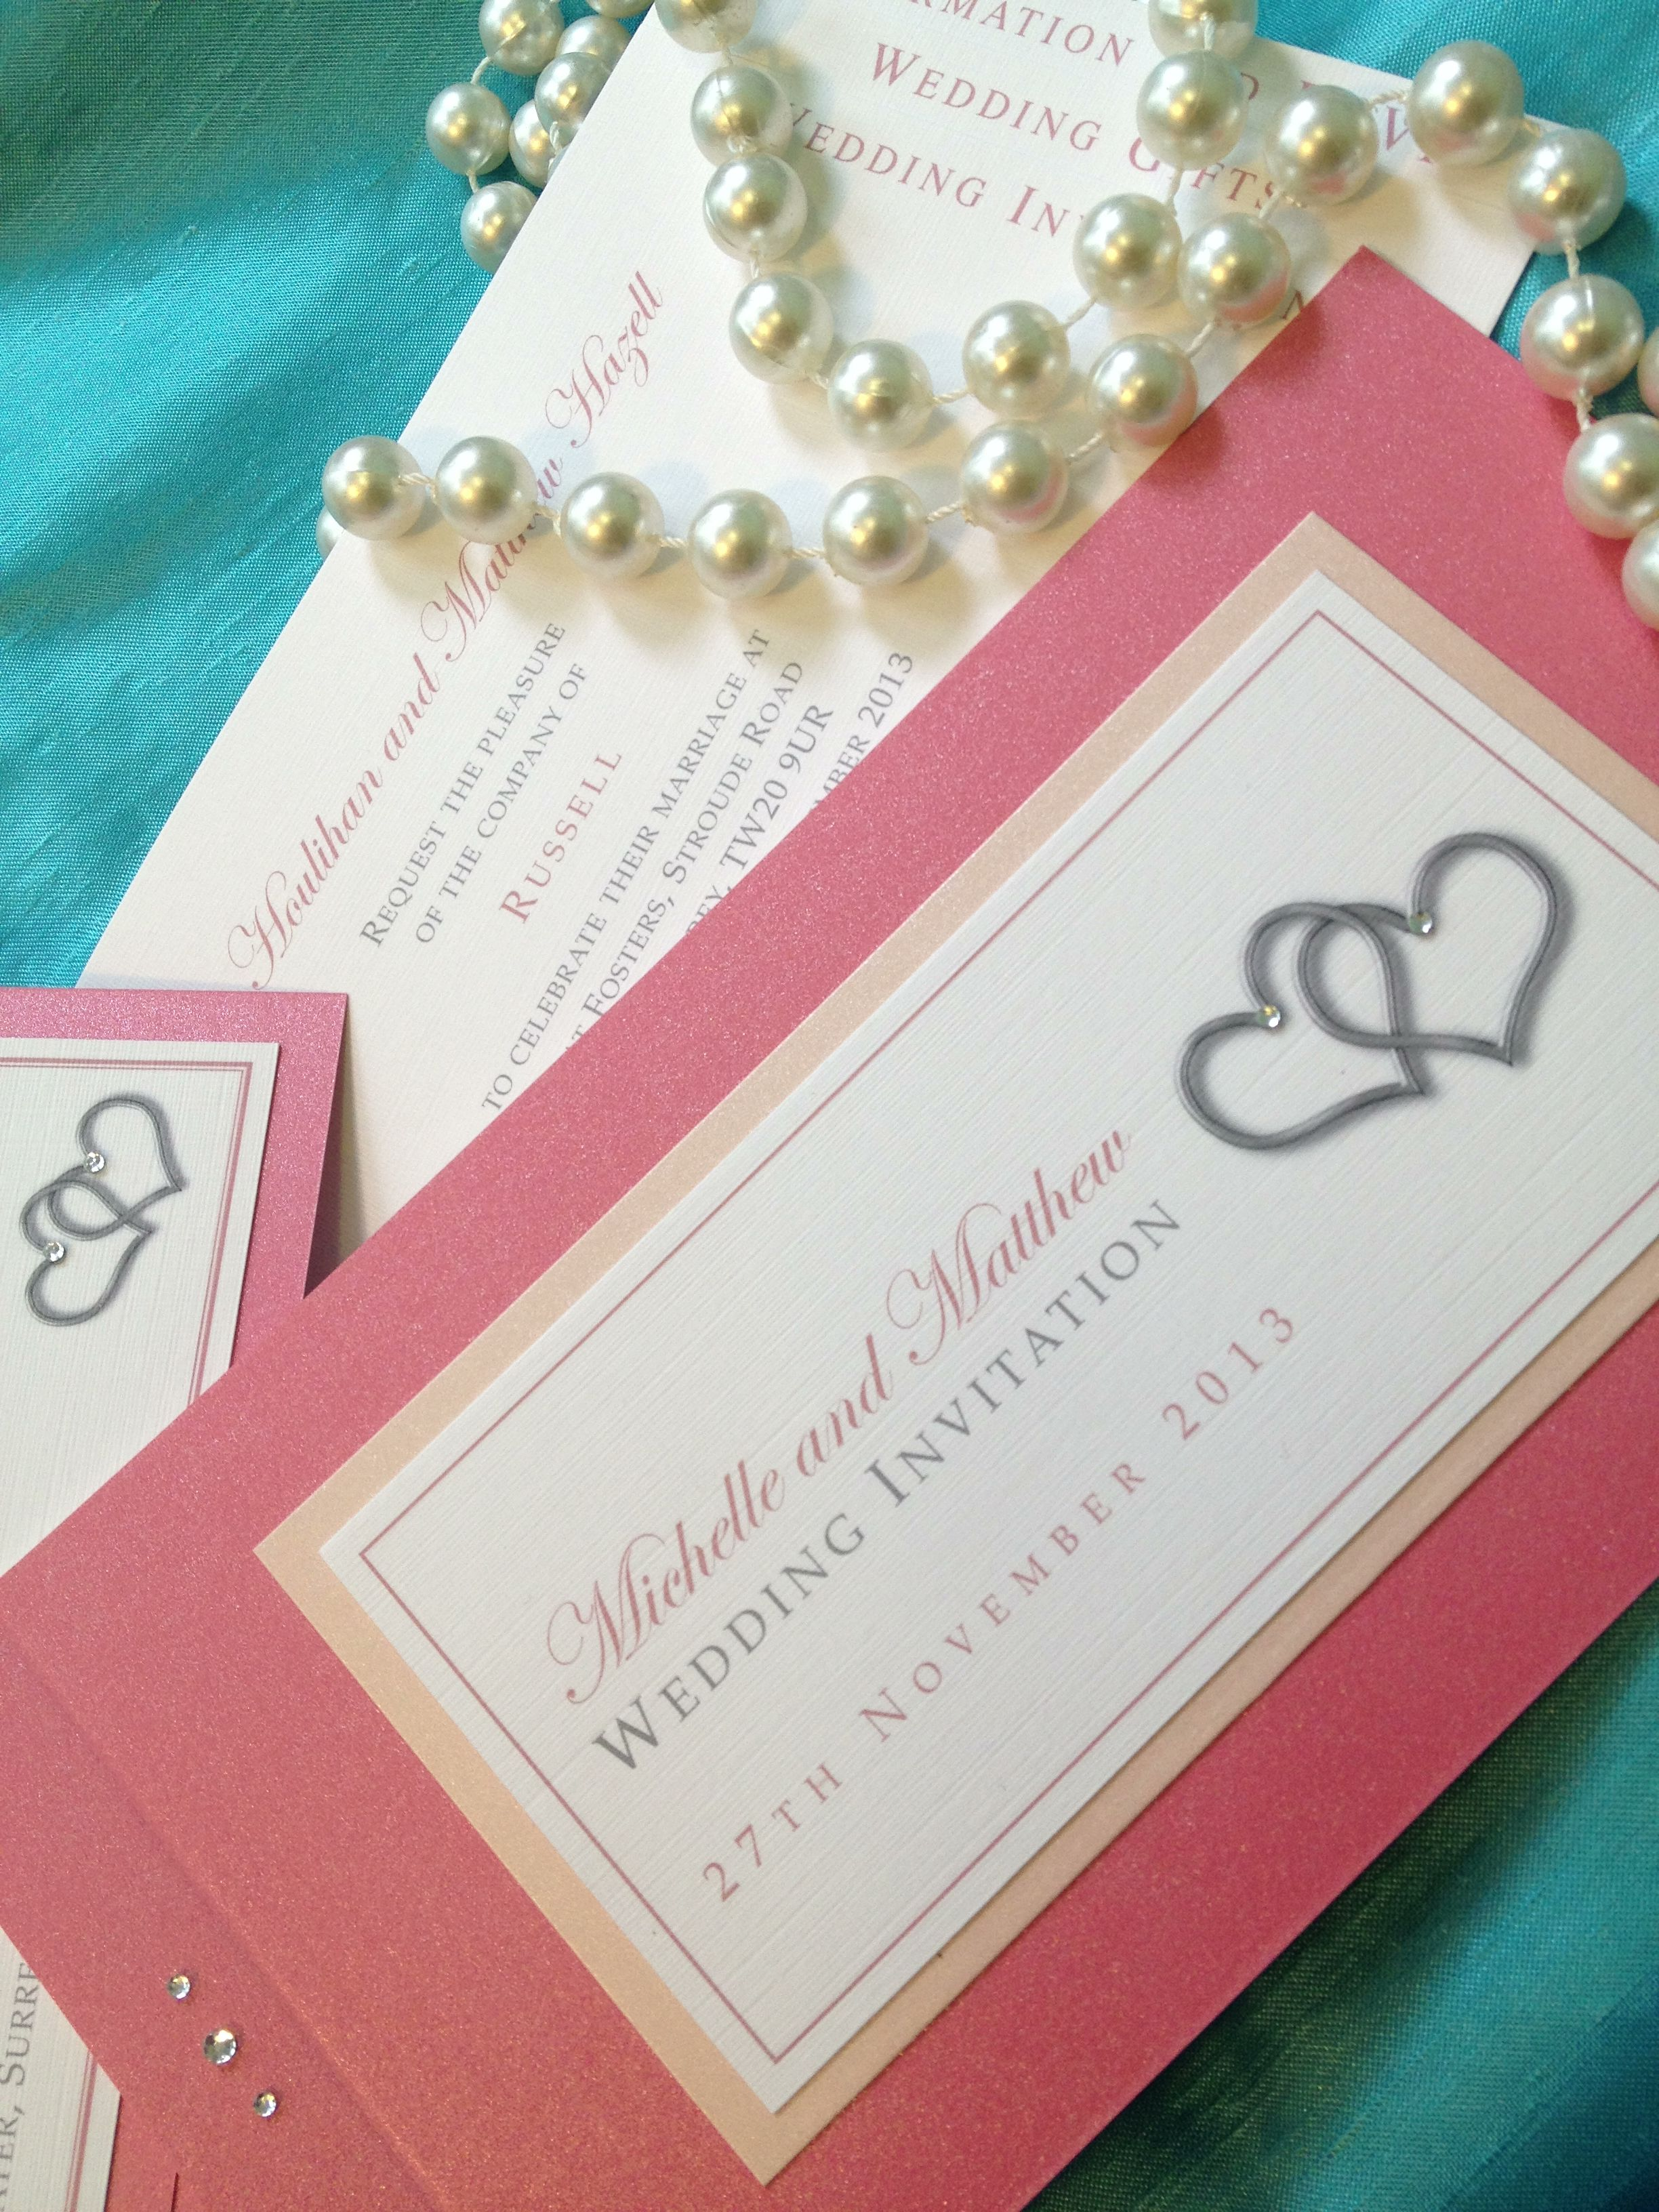 Invitation Handmade Cheque Book In Luxury Pearlescent Card By Perfect Wedding Stationery Inspiration Book Wedding Invitations Cheque Book Wedding Invitations